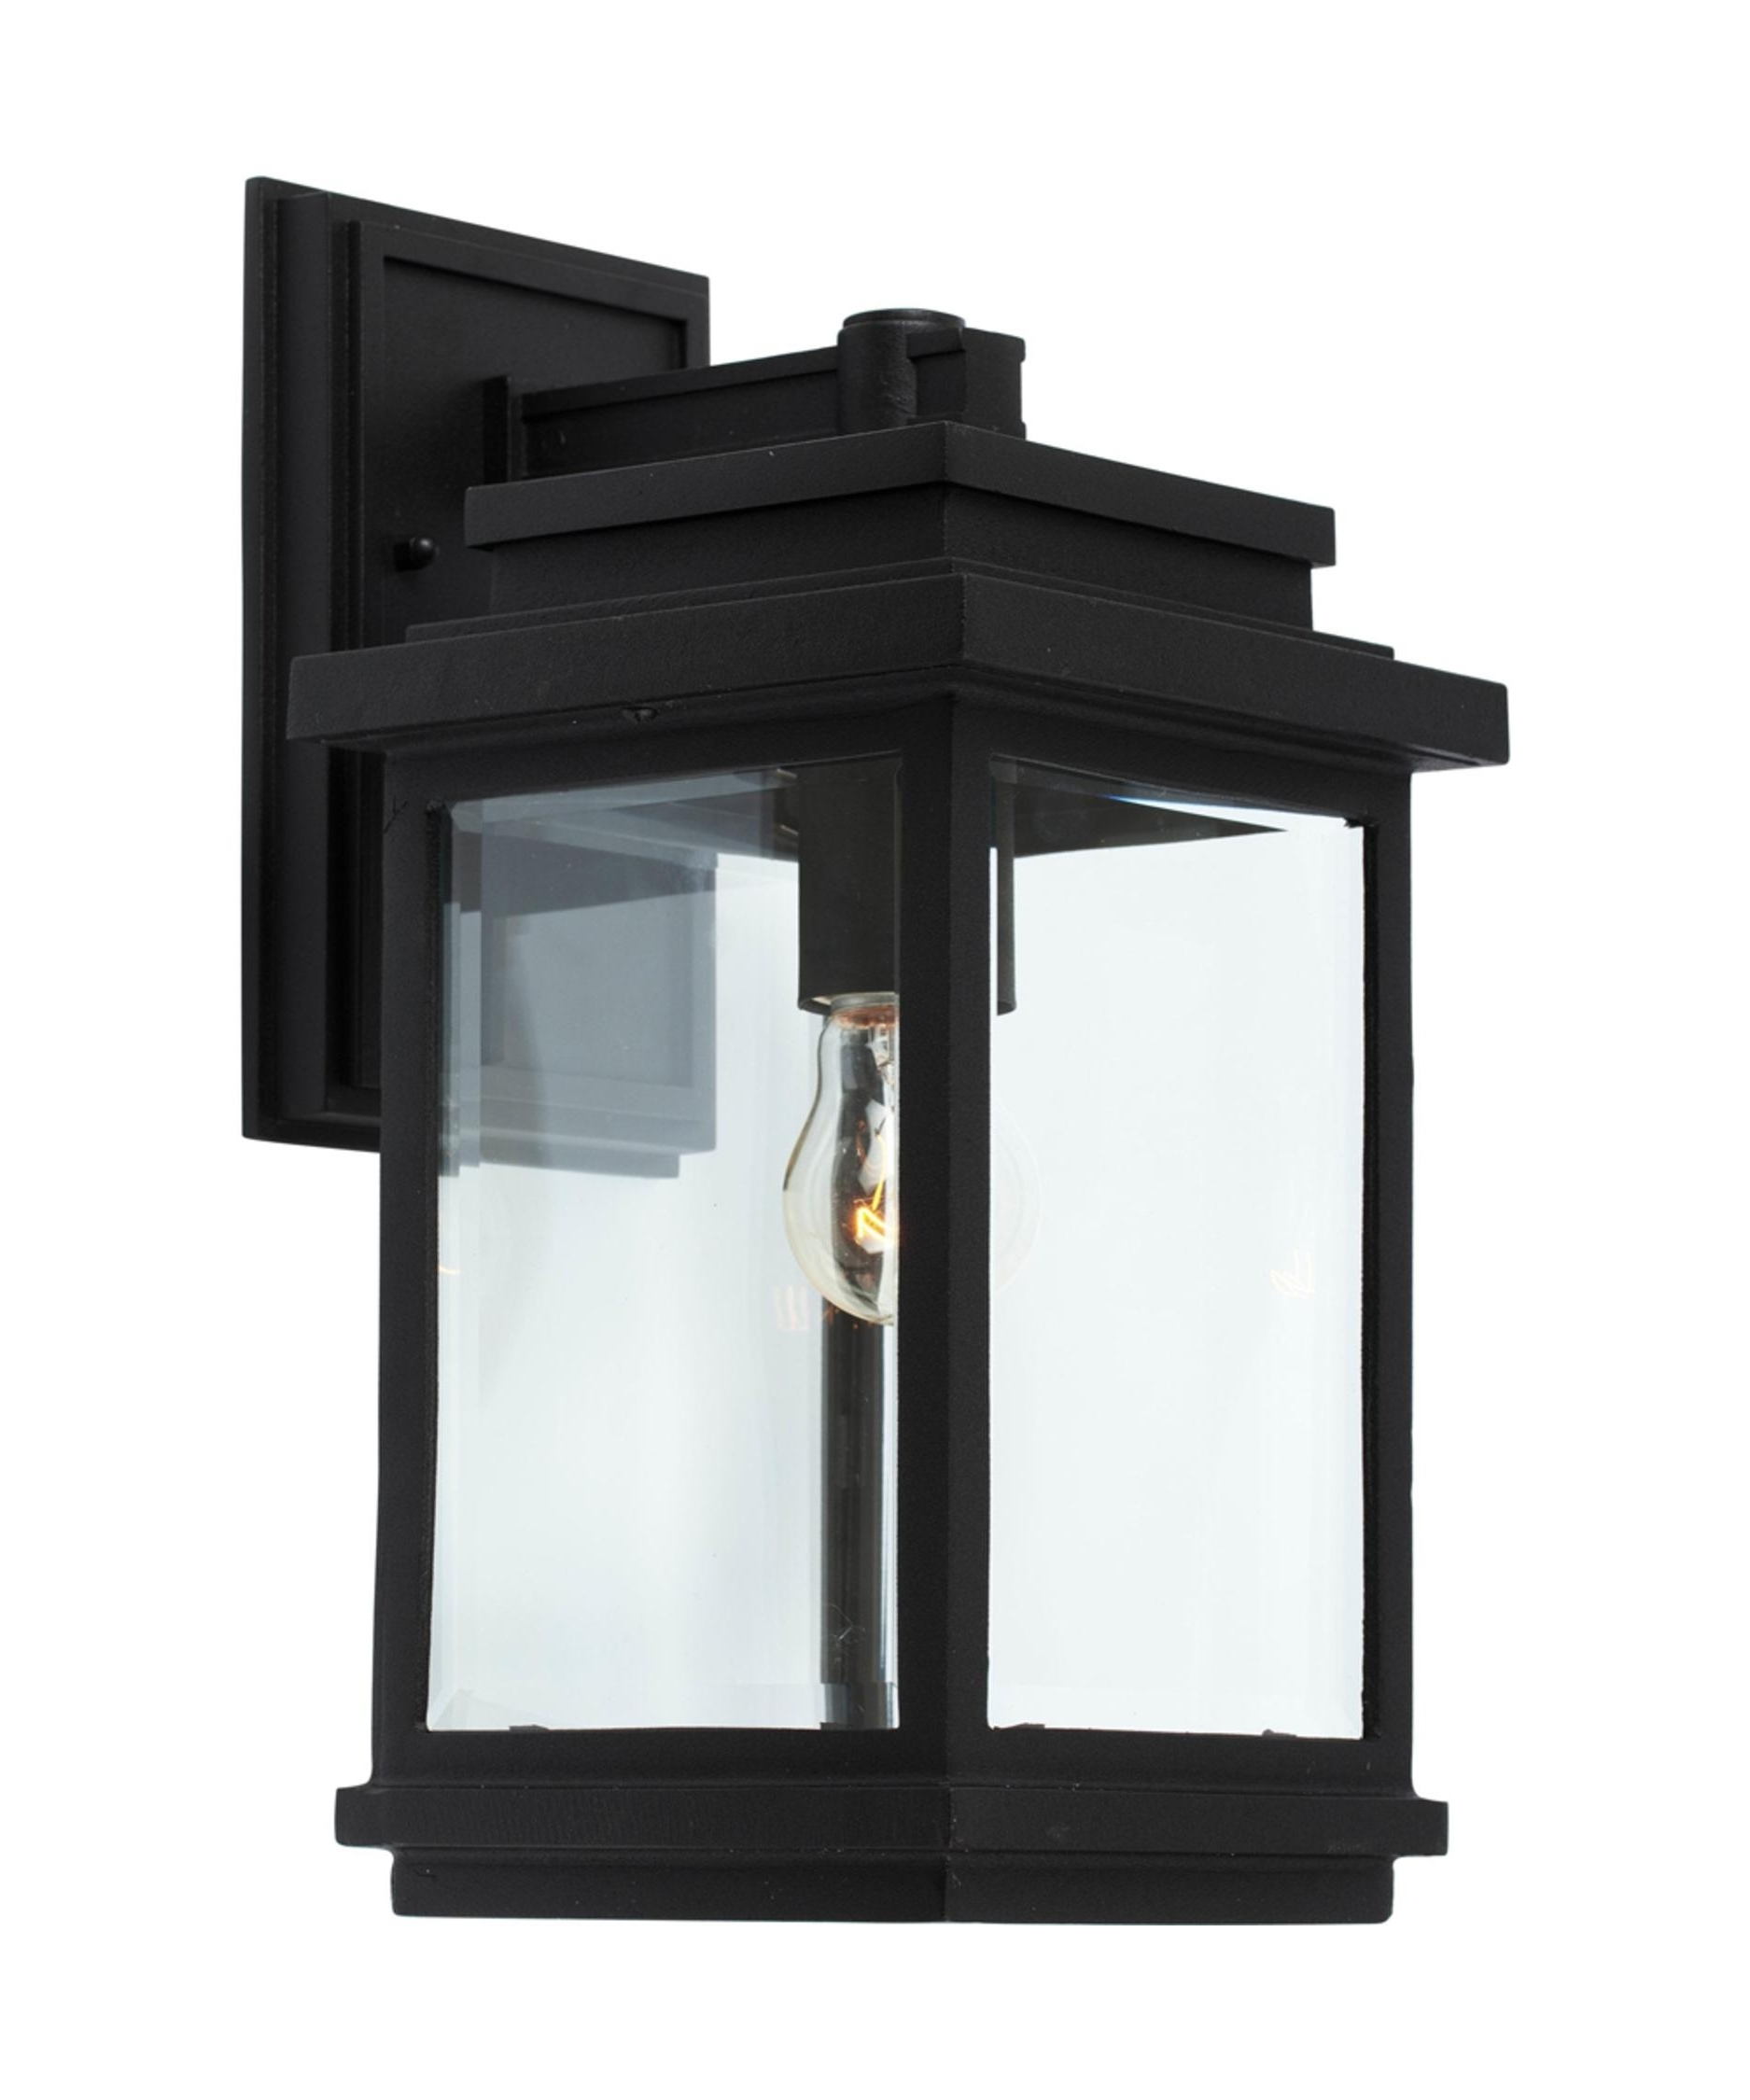 2018 Outdoor Wall Light Glass Within Artcraft Ac8290 Fremont 7 Inch Wide 1 Light Outdoor Wall Light (View 9 of 20)